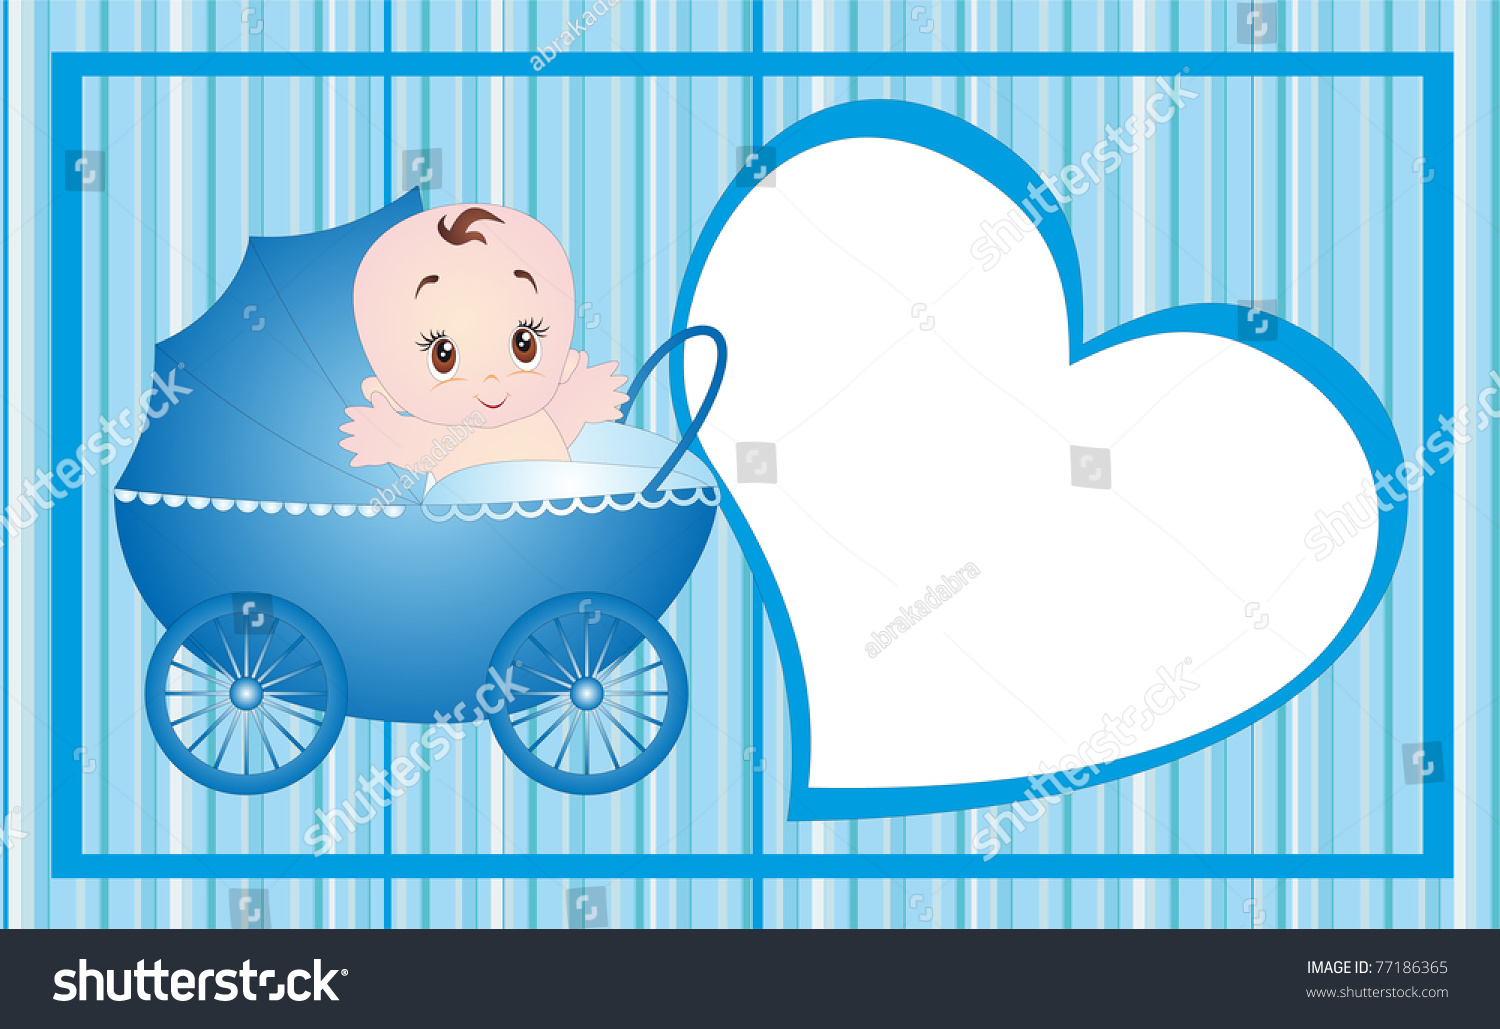 new born baby card design illustration isolated on white background - New Born Baby Card